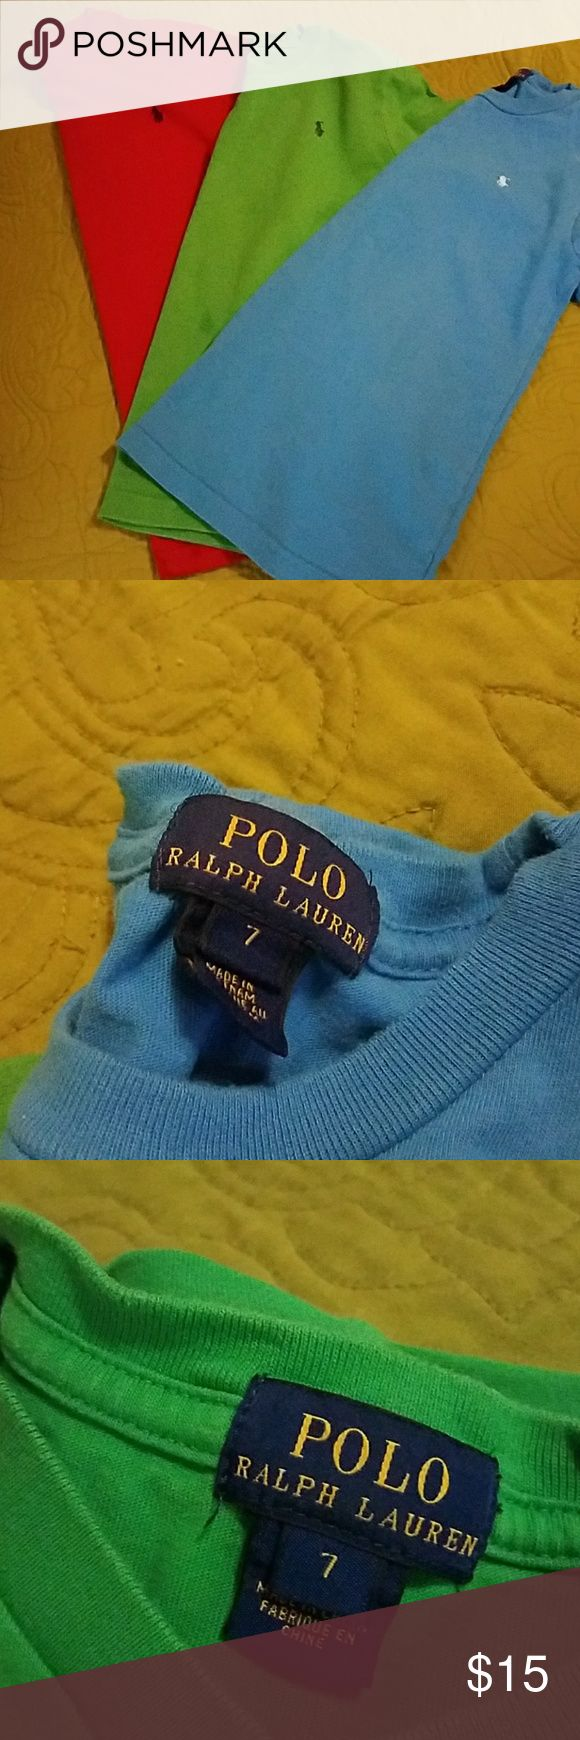 Lot of 3 Polo Ralph Lauren T-shirts Gently used Lot of 3 Polo Ralph Lauren T-shirts, red,blue,green, great condition Polo by Ralph Lauren Shirts & Tops